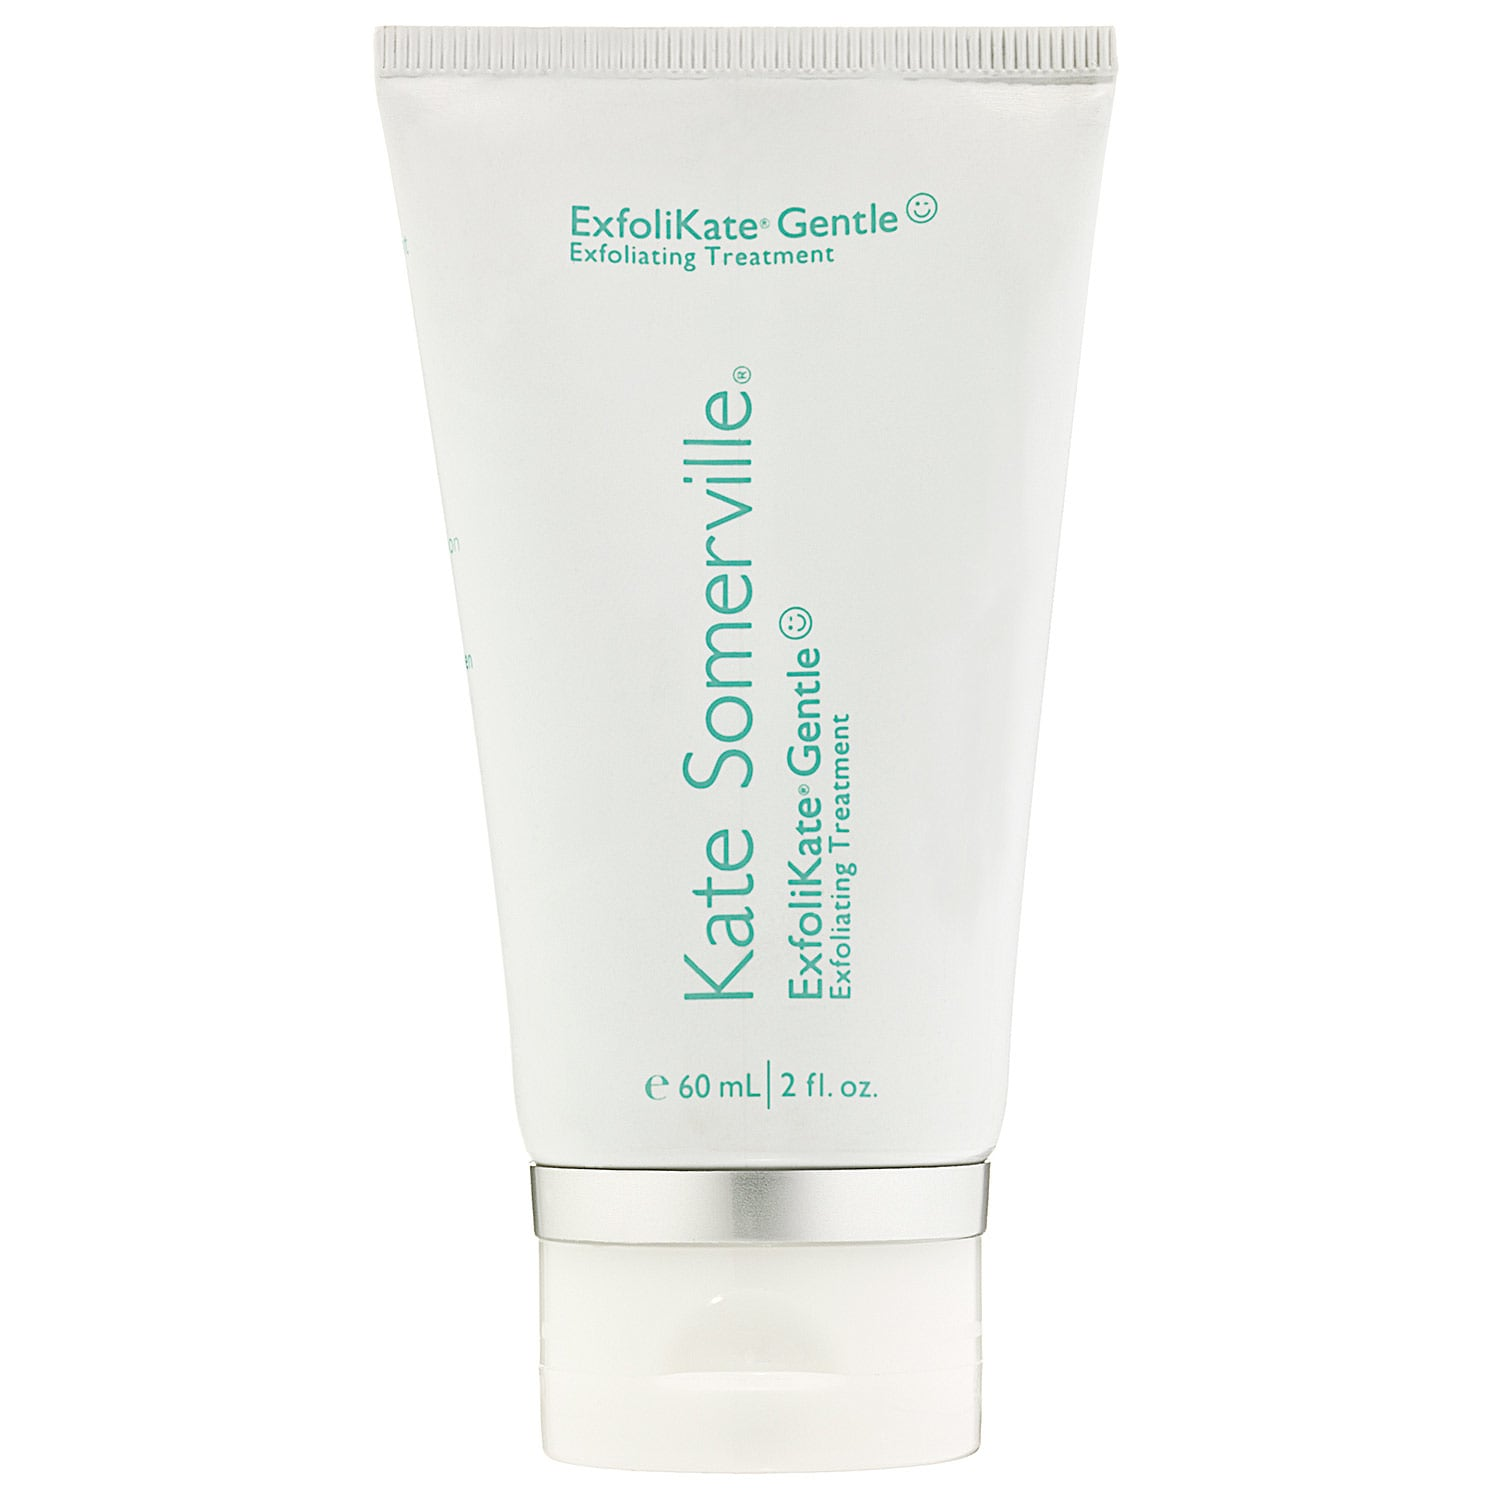 ExfoliKate® Gentle Exfoliating Treatment